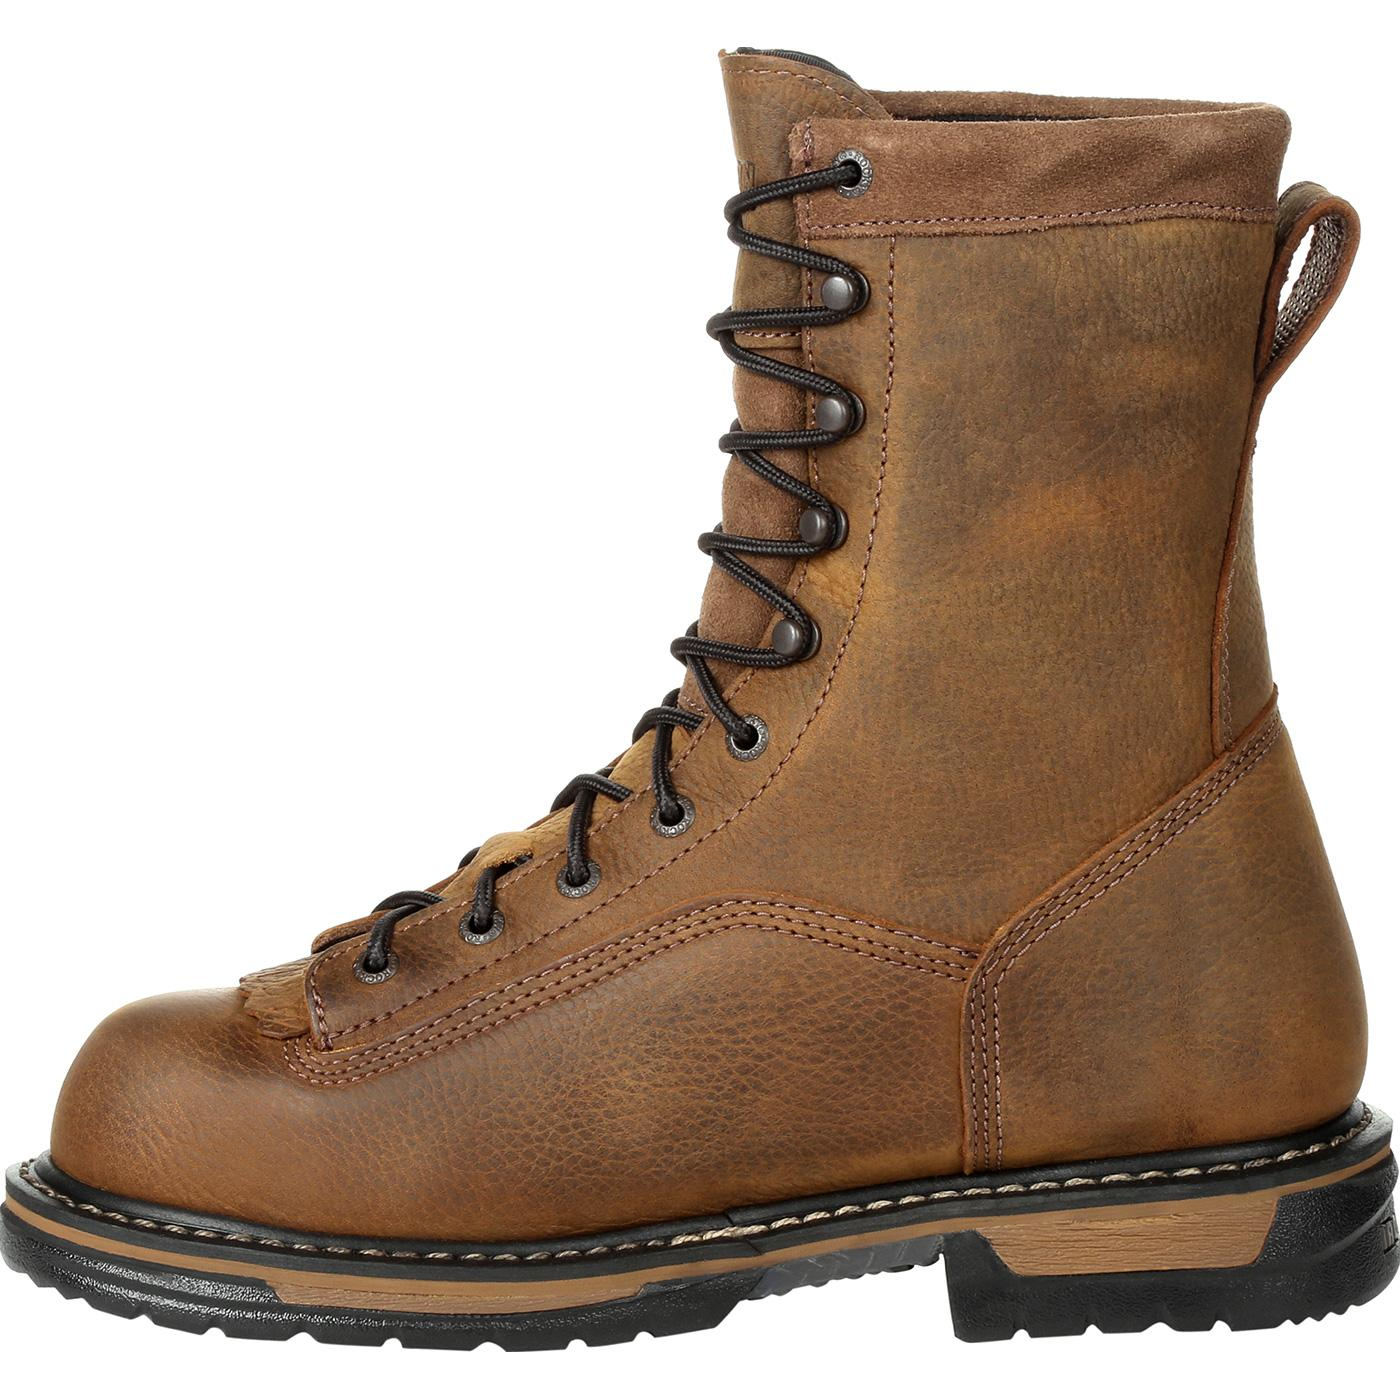 Designed for dependable outdoor protection, Rocky® boots are also built to be comfortable. Whether you are hiking, hunting or wading through murky water, there is a pair of Rocky® Work Shoes designed for the job. Men's Rocky® Work Boots feature breathable, sturdy materials, stellar traction and .